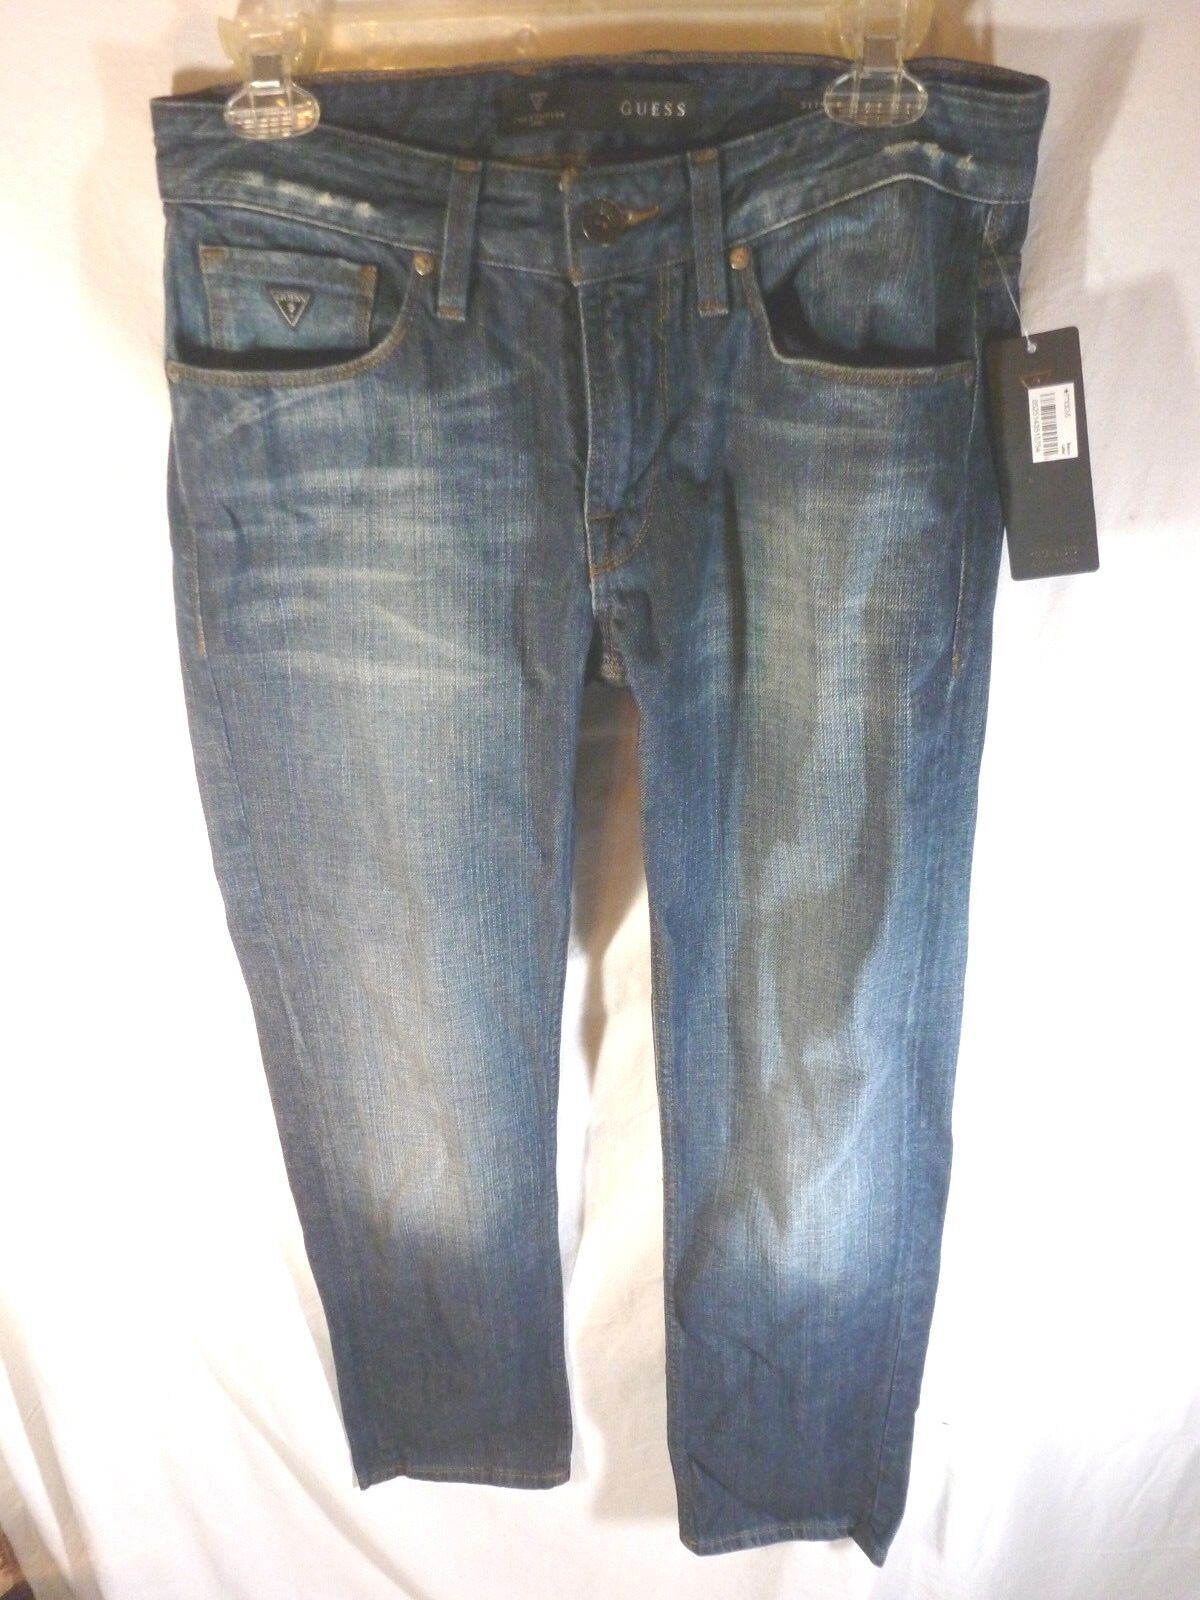 Men's Guess Jeans Slim Straight Fit Distressed Wash, 29 x 30, NWT